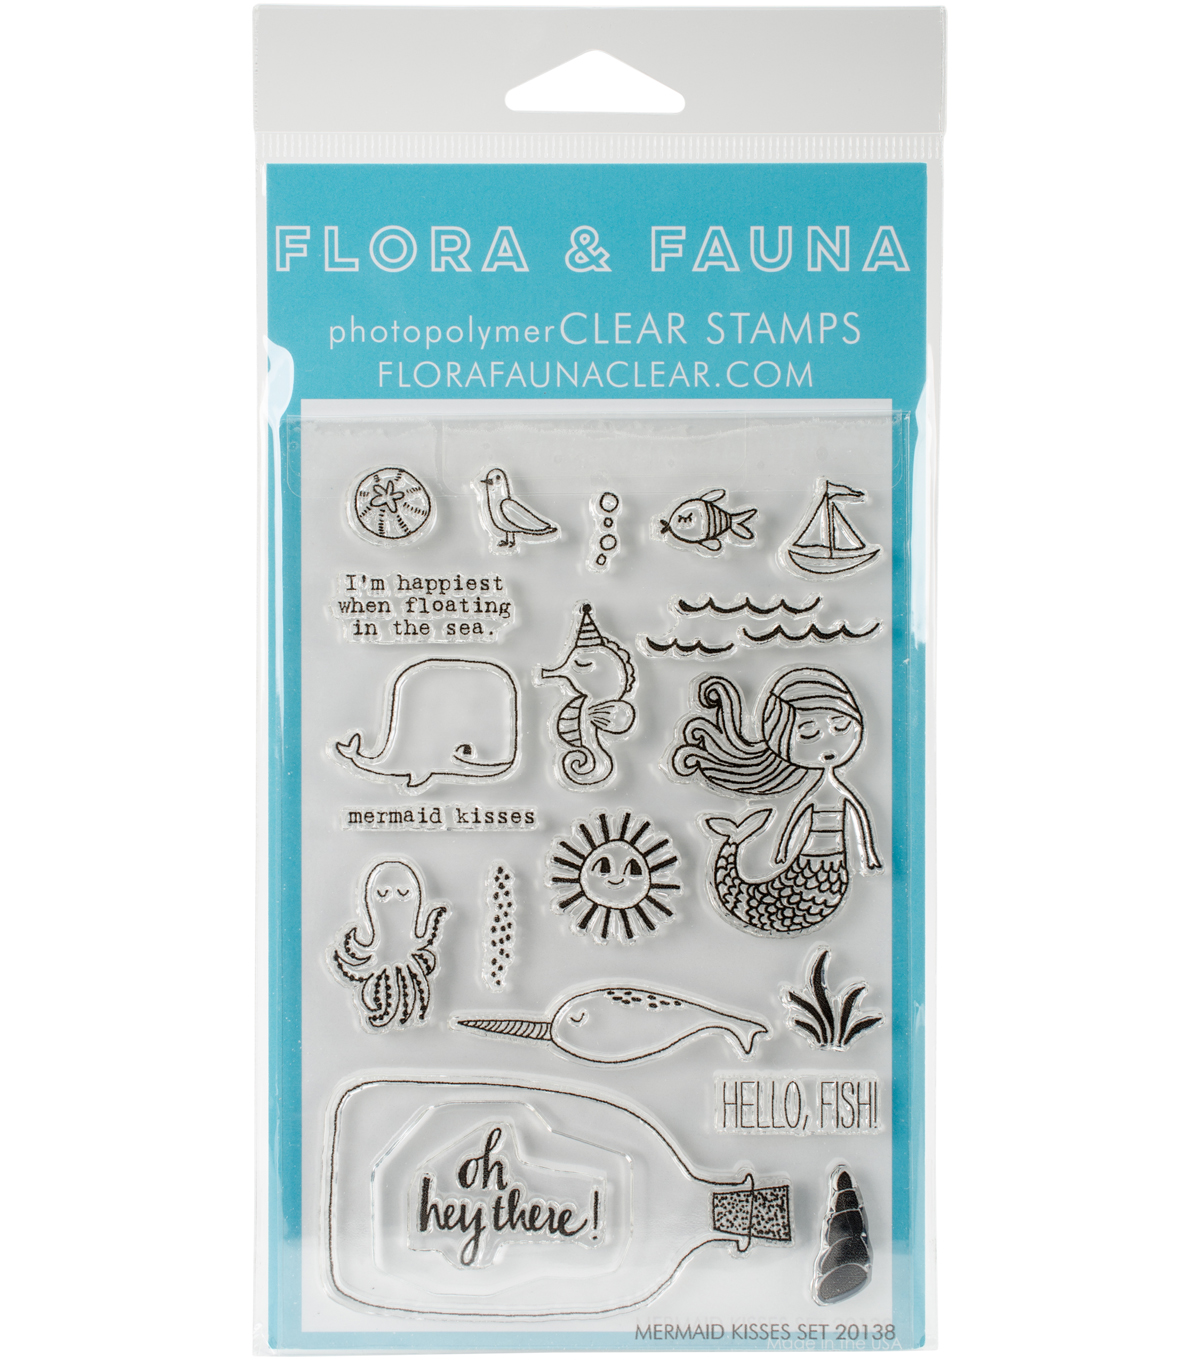 Flora & Fauna 20 pk Clear Stamps-Mermaid Kisses